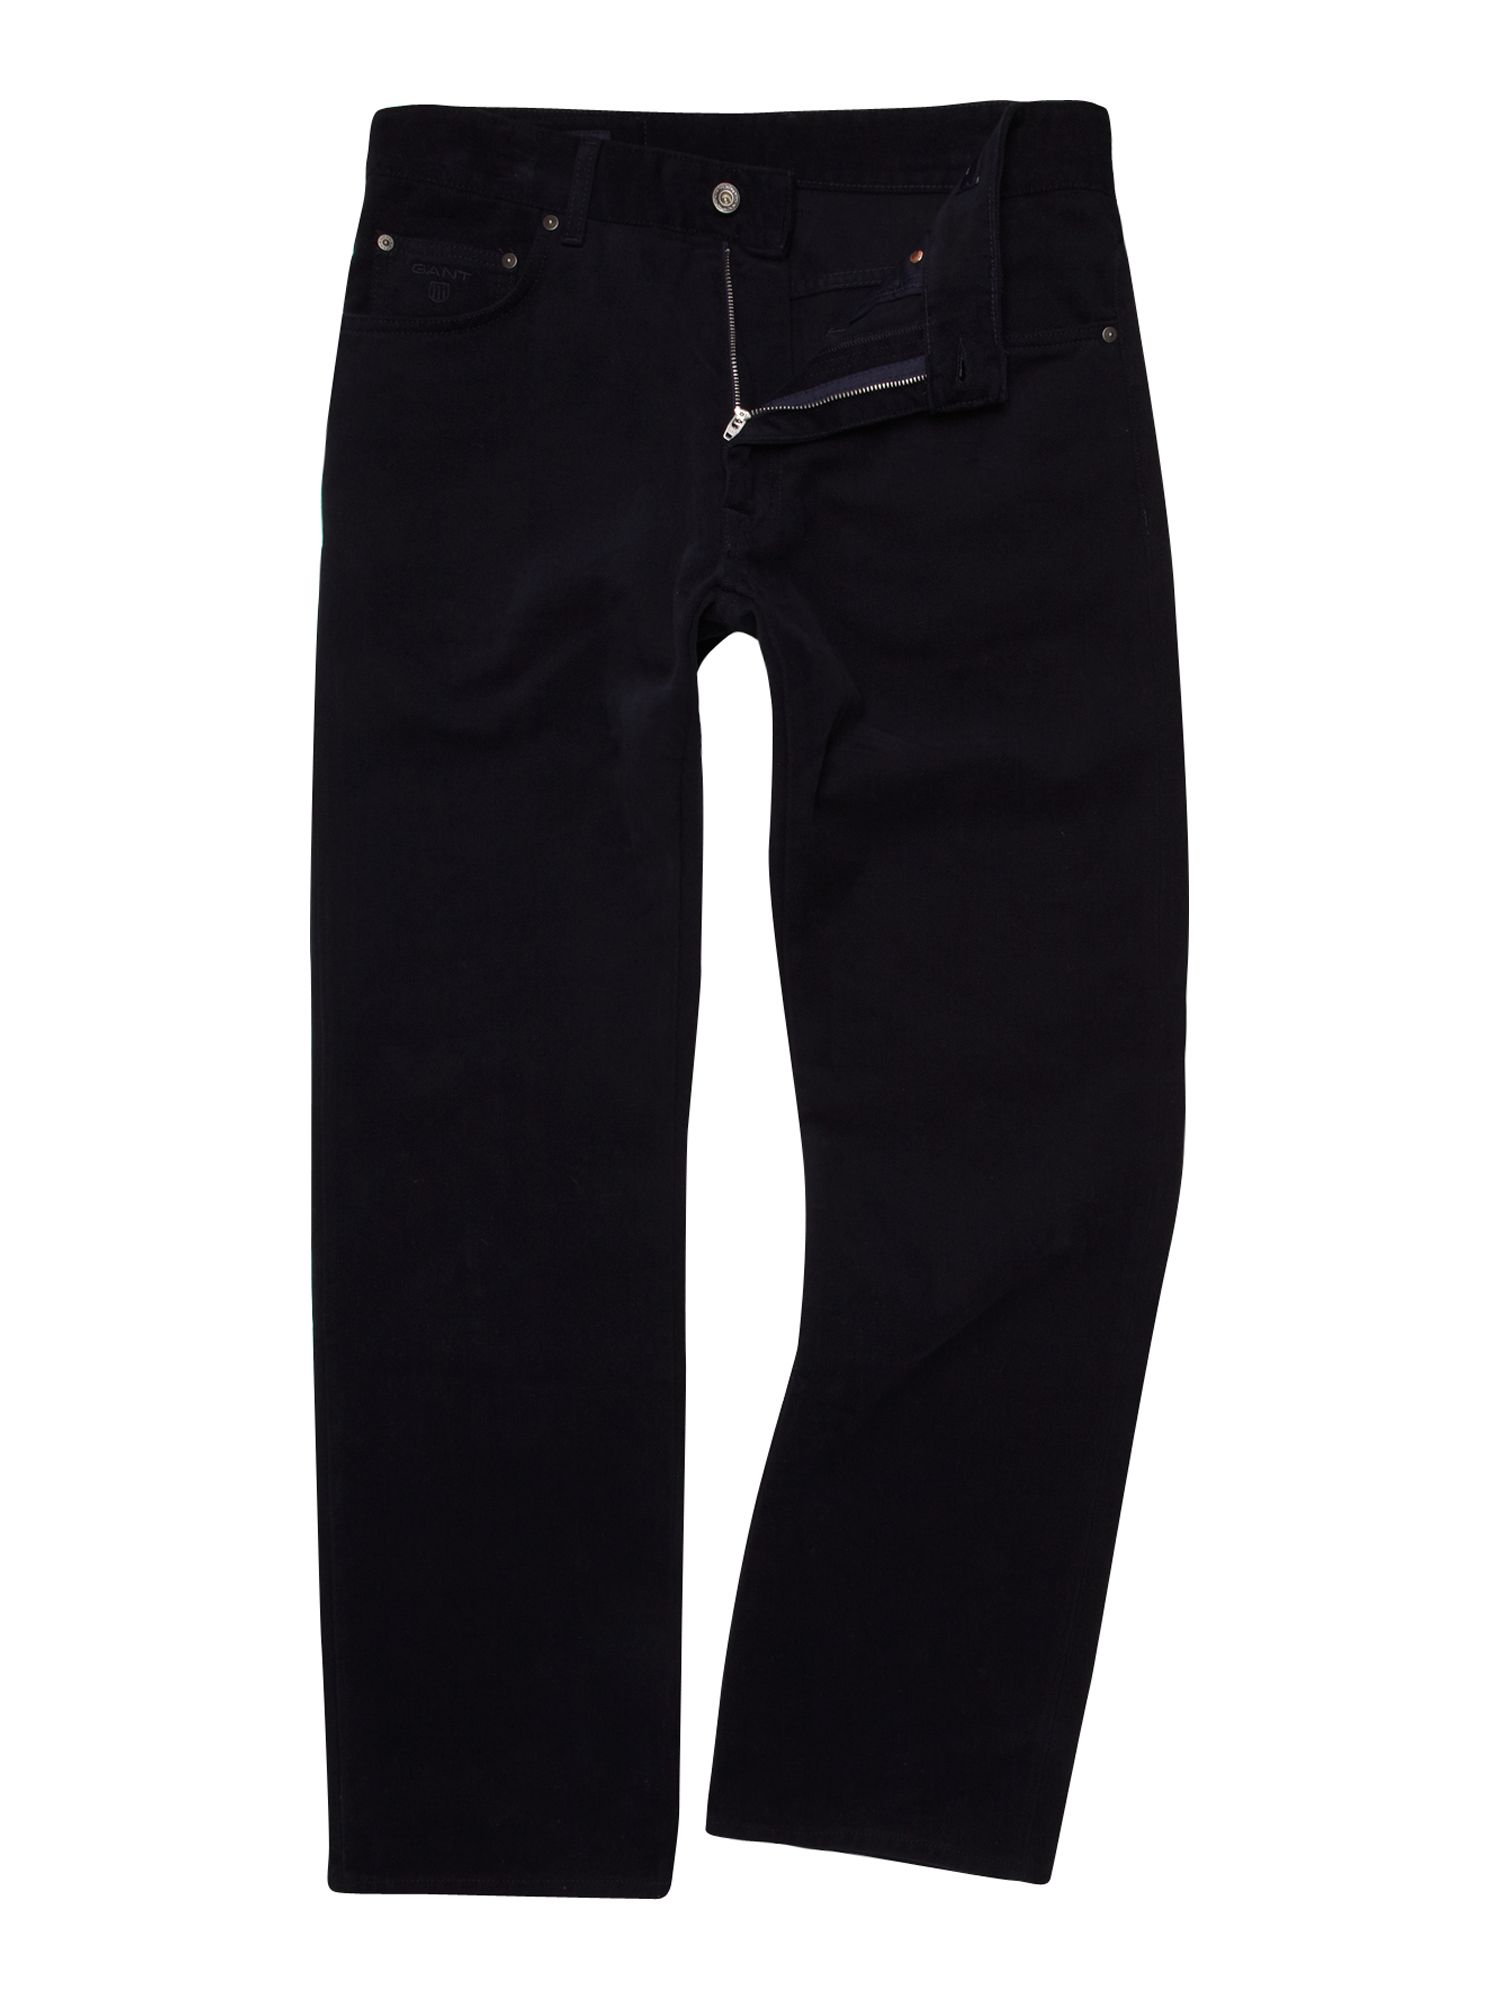 Regular fit soft twill trousers